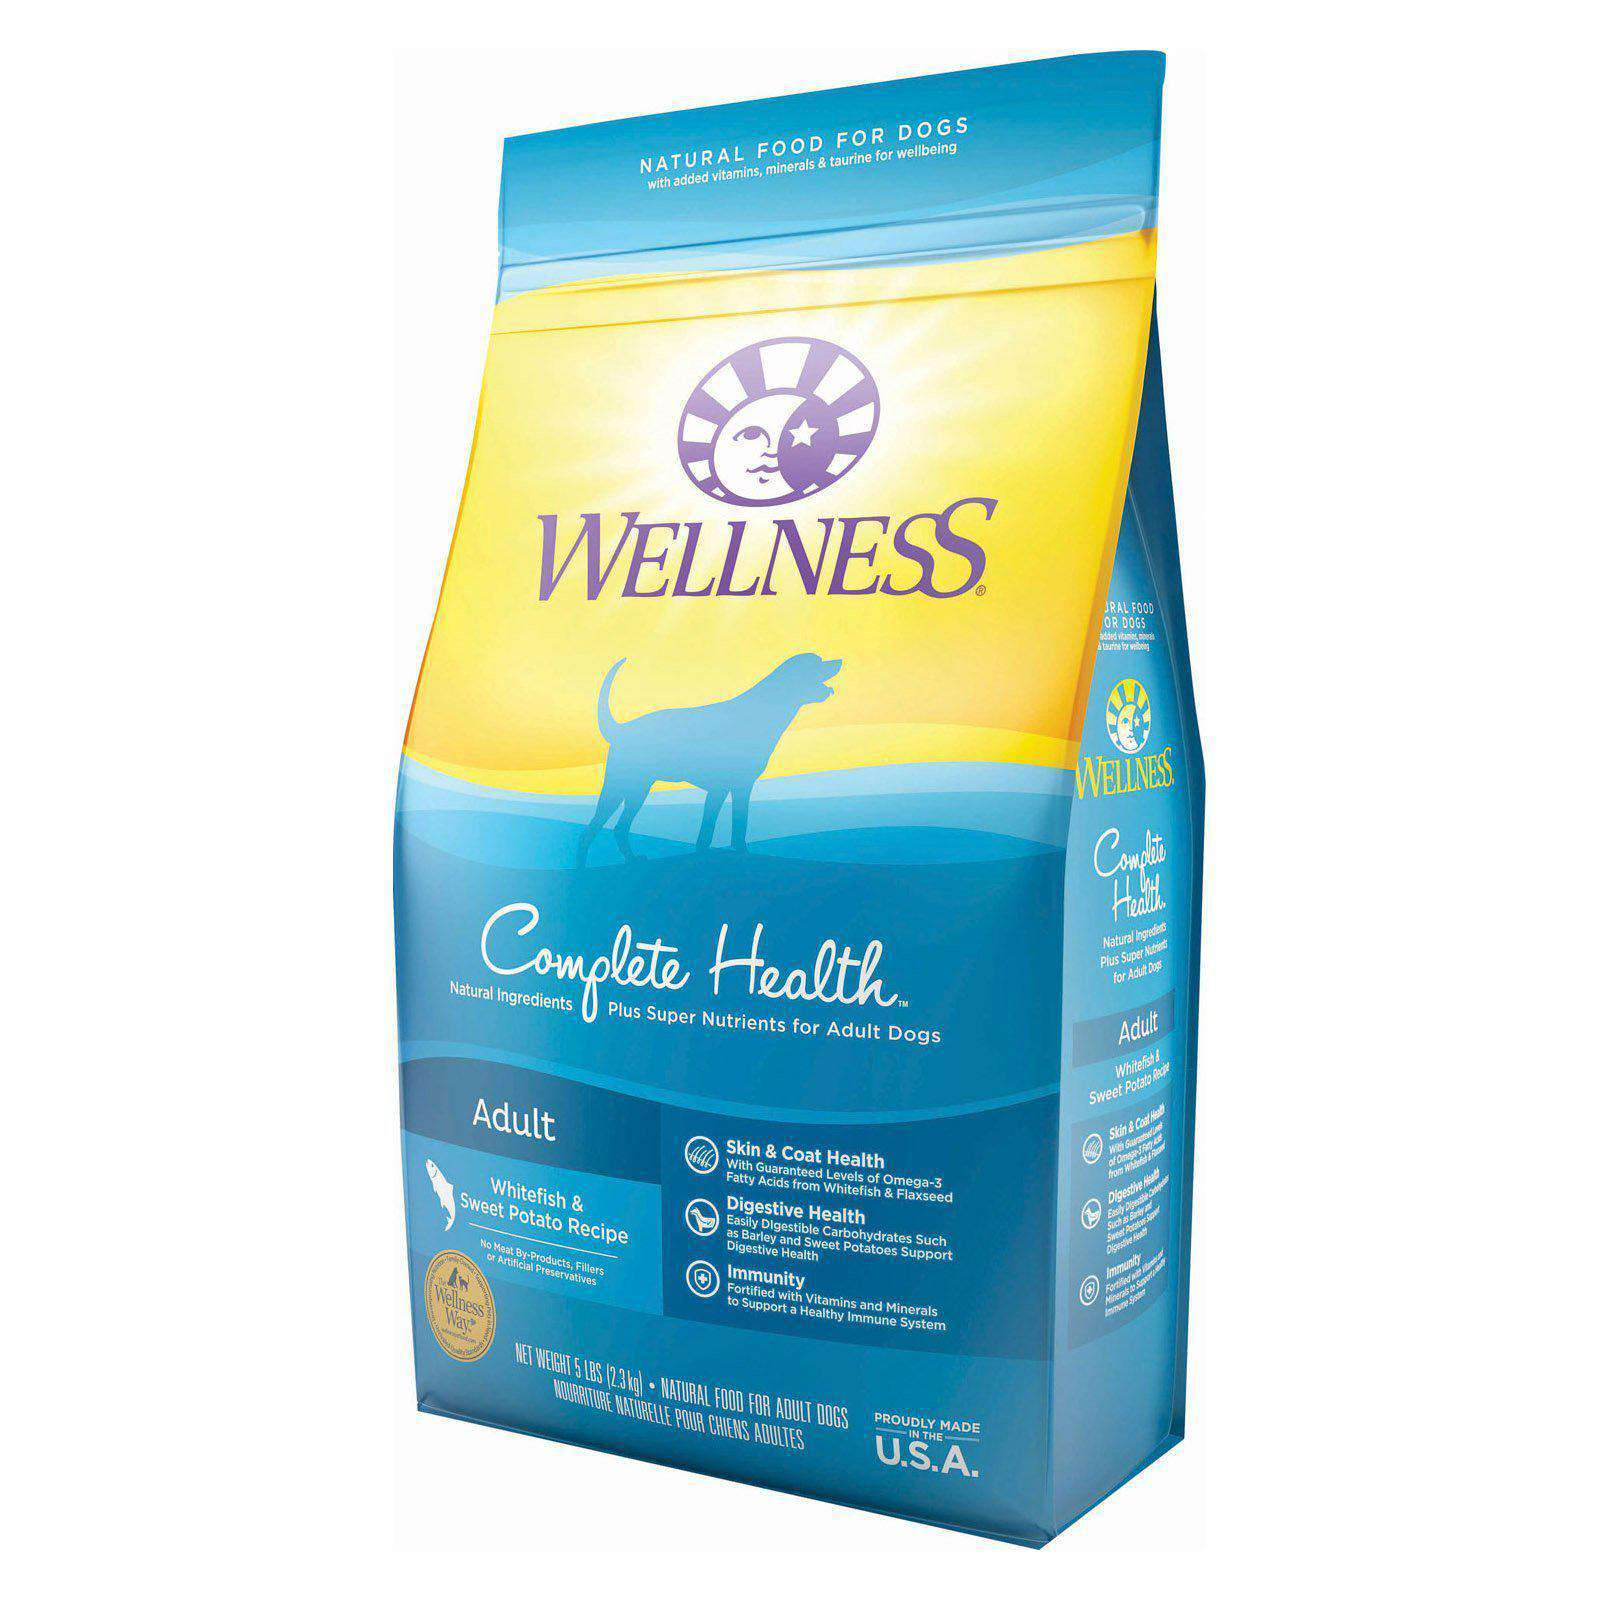 Wellness Pet Products Dog Food - Whitefish And Sweet Potato Recipe - Case Of 6 - 5 Lb.-Wellness Pet Products-DirtyFurClothing